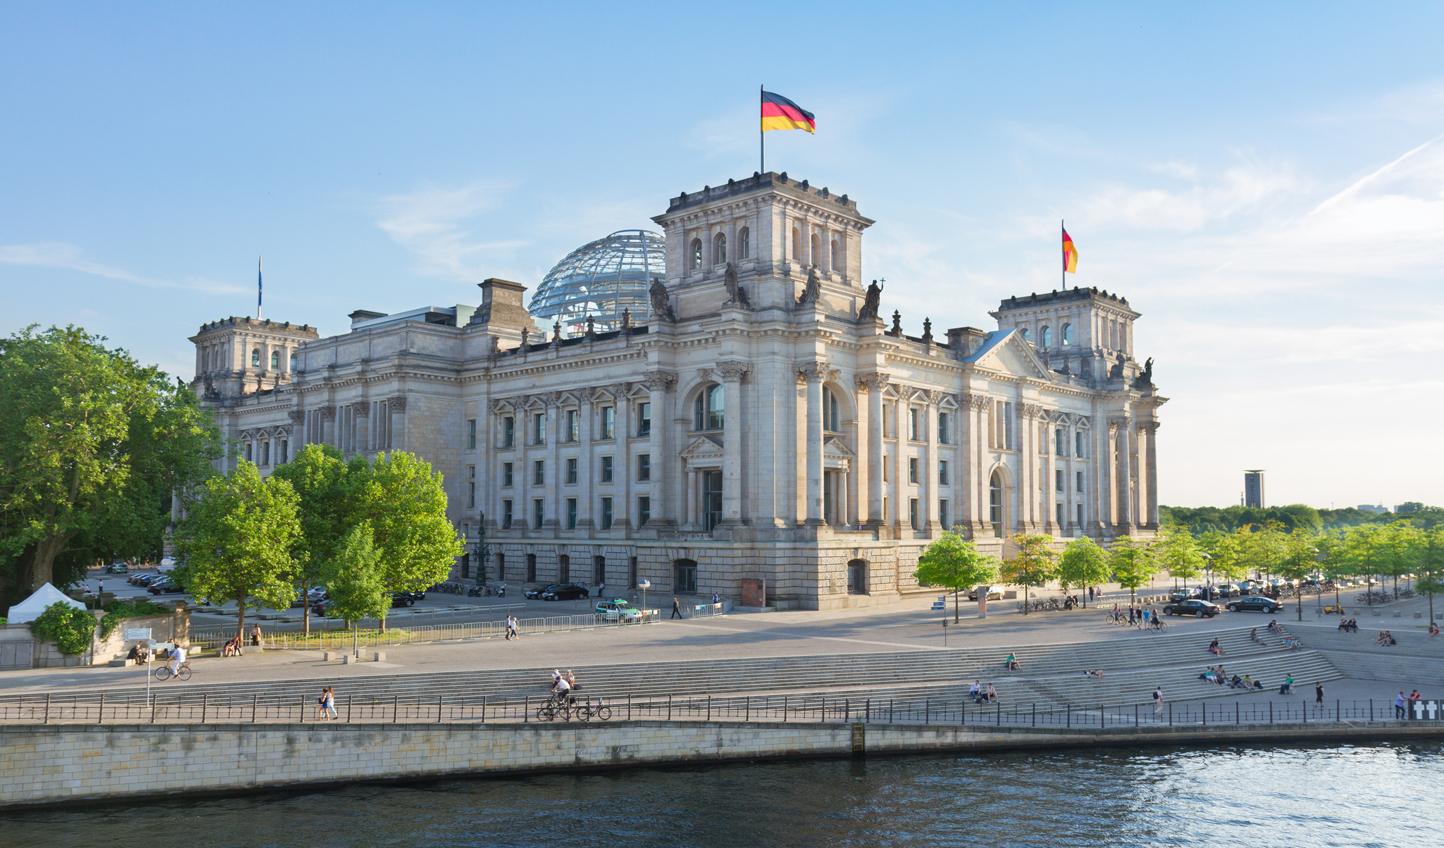 Berlin is a city built to impress